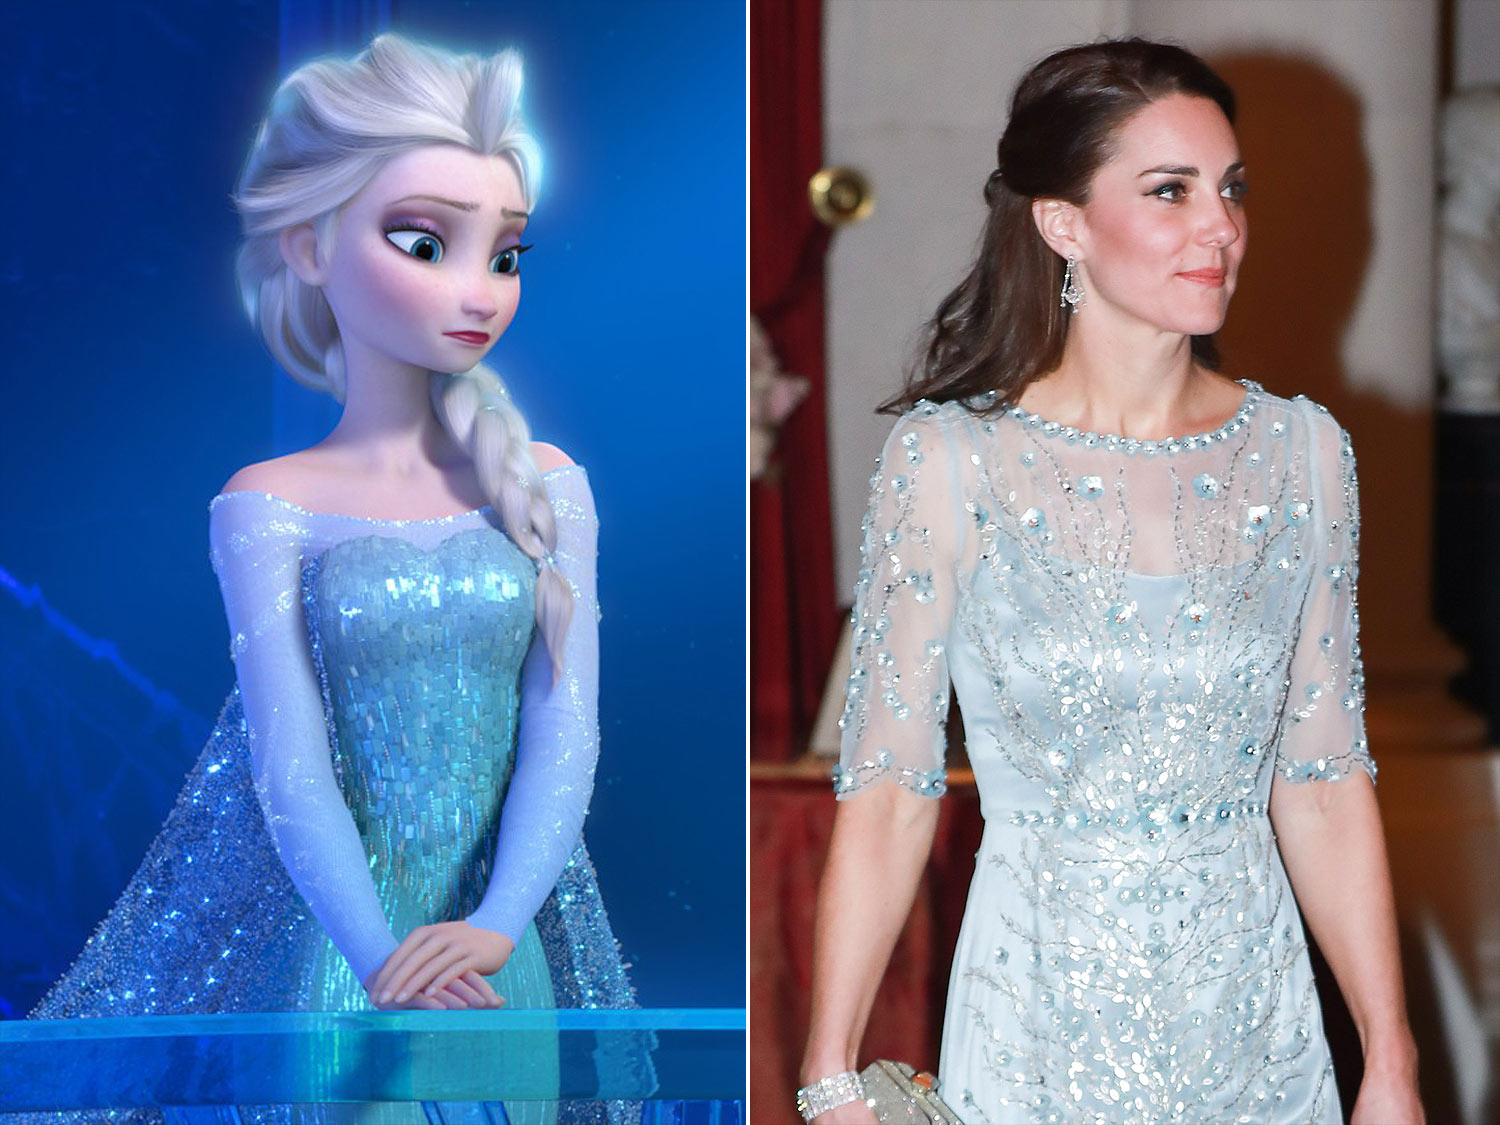 FROZEN, Elsa (voice: Idina Menzel), 2013. ©Walt Disney Pictures/courtesy Everett Collection                                                  PARIS, FRANCE - MARCH 17:  Catherine, Duchess of Cambridge attends a dinner at the British Embassy on March 17, 2017 in Paris, France. The Duke and Duchess are on a two day tour of France.  (Photo by Laurent Vu/SC Pool - Corbis/Corbis via Getty Images)